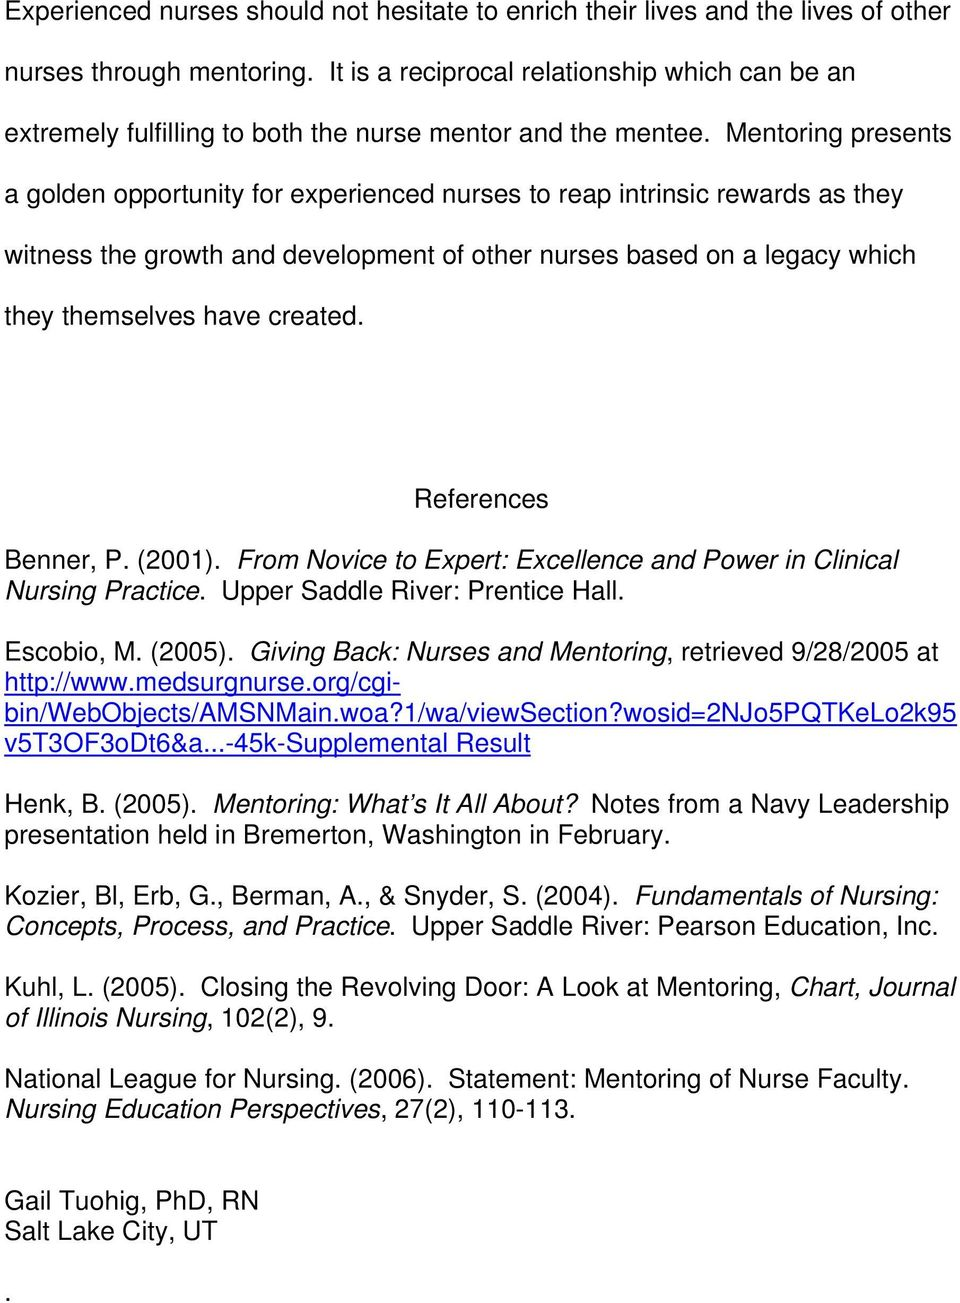 Mentoring presents a golden opportunity for experienced nurses to reap intrinsic rewards as they witness the growth and development of other nurses based on a legacy which they themselves have